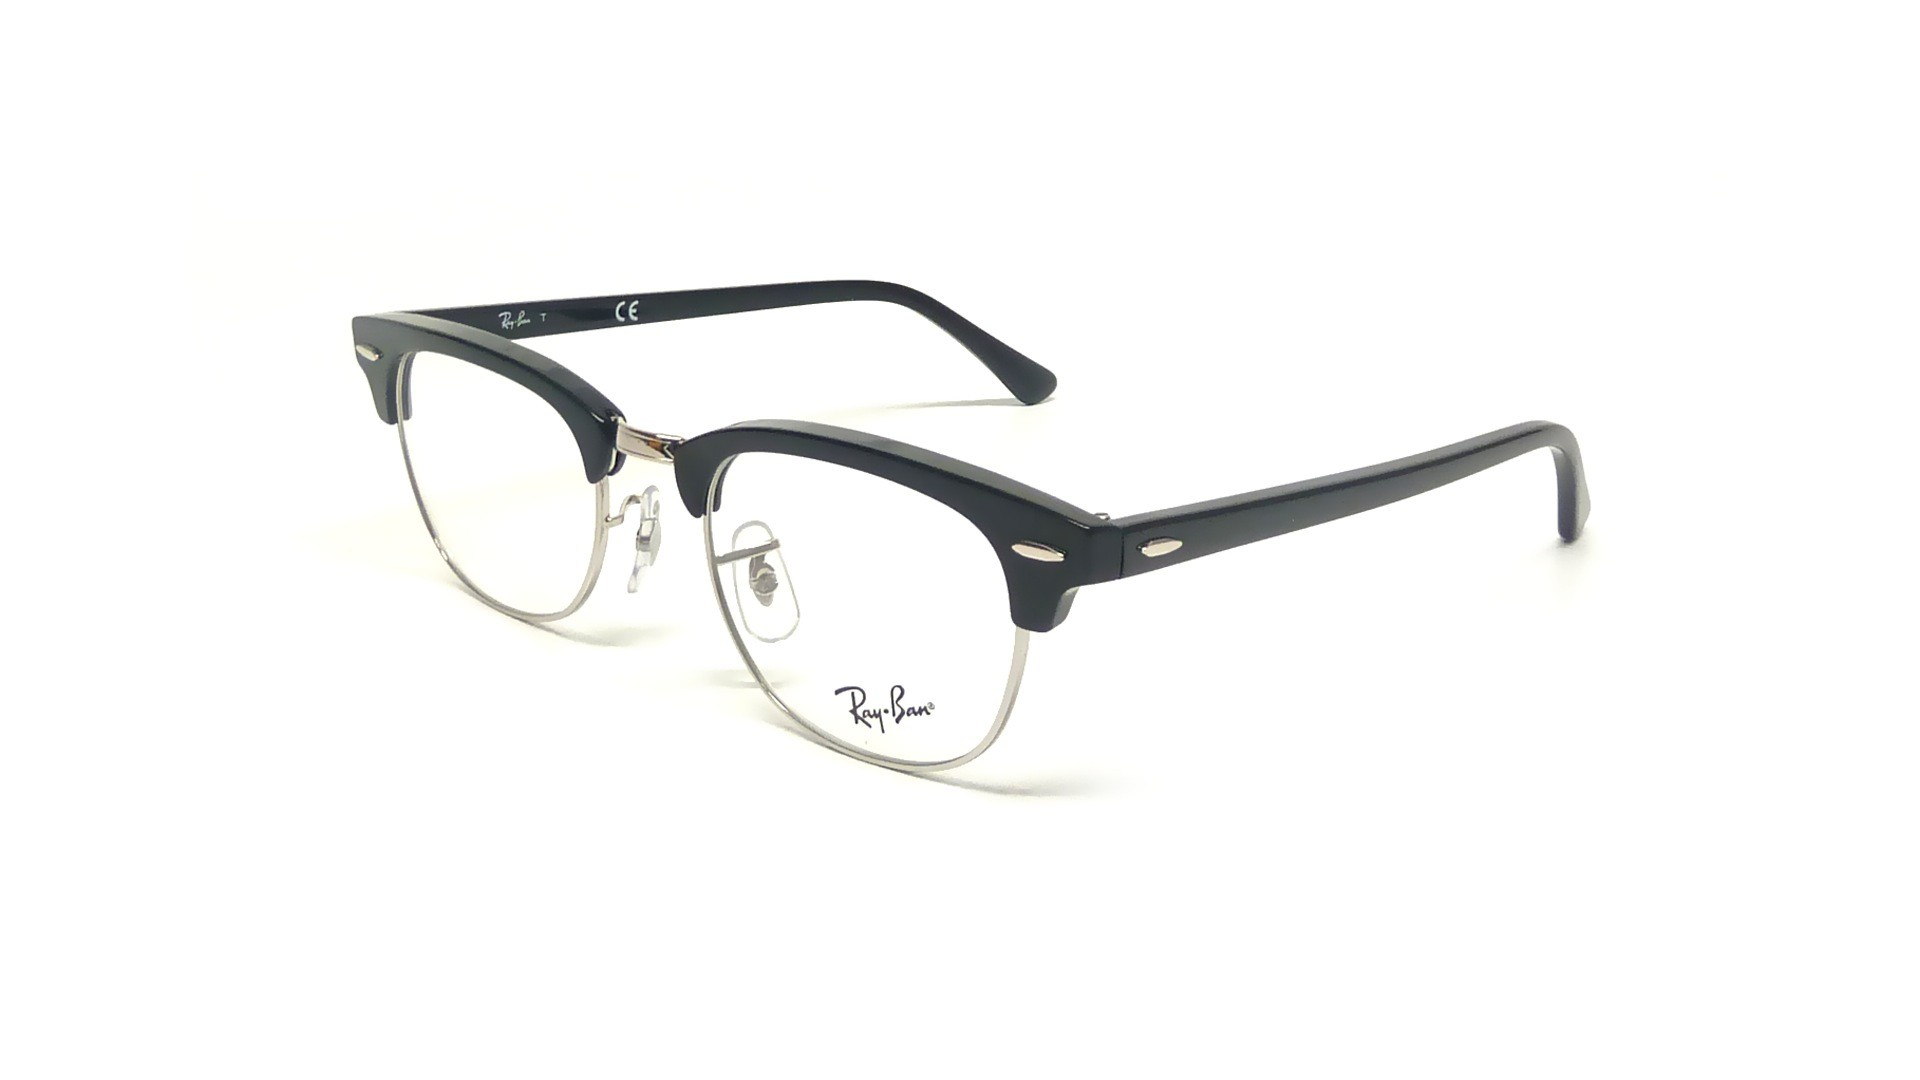 c612c47bf32 new style ray ban clubmaster black rx5154 rb5154 2000 51 21 medium  visiofactory 5517e f7237